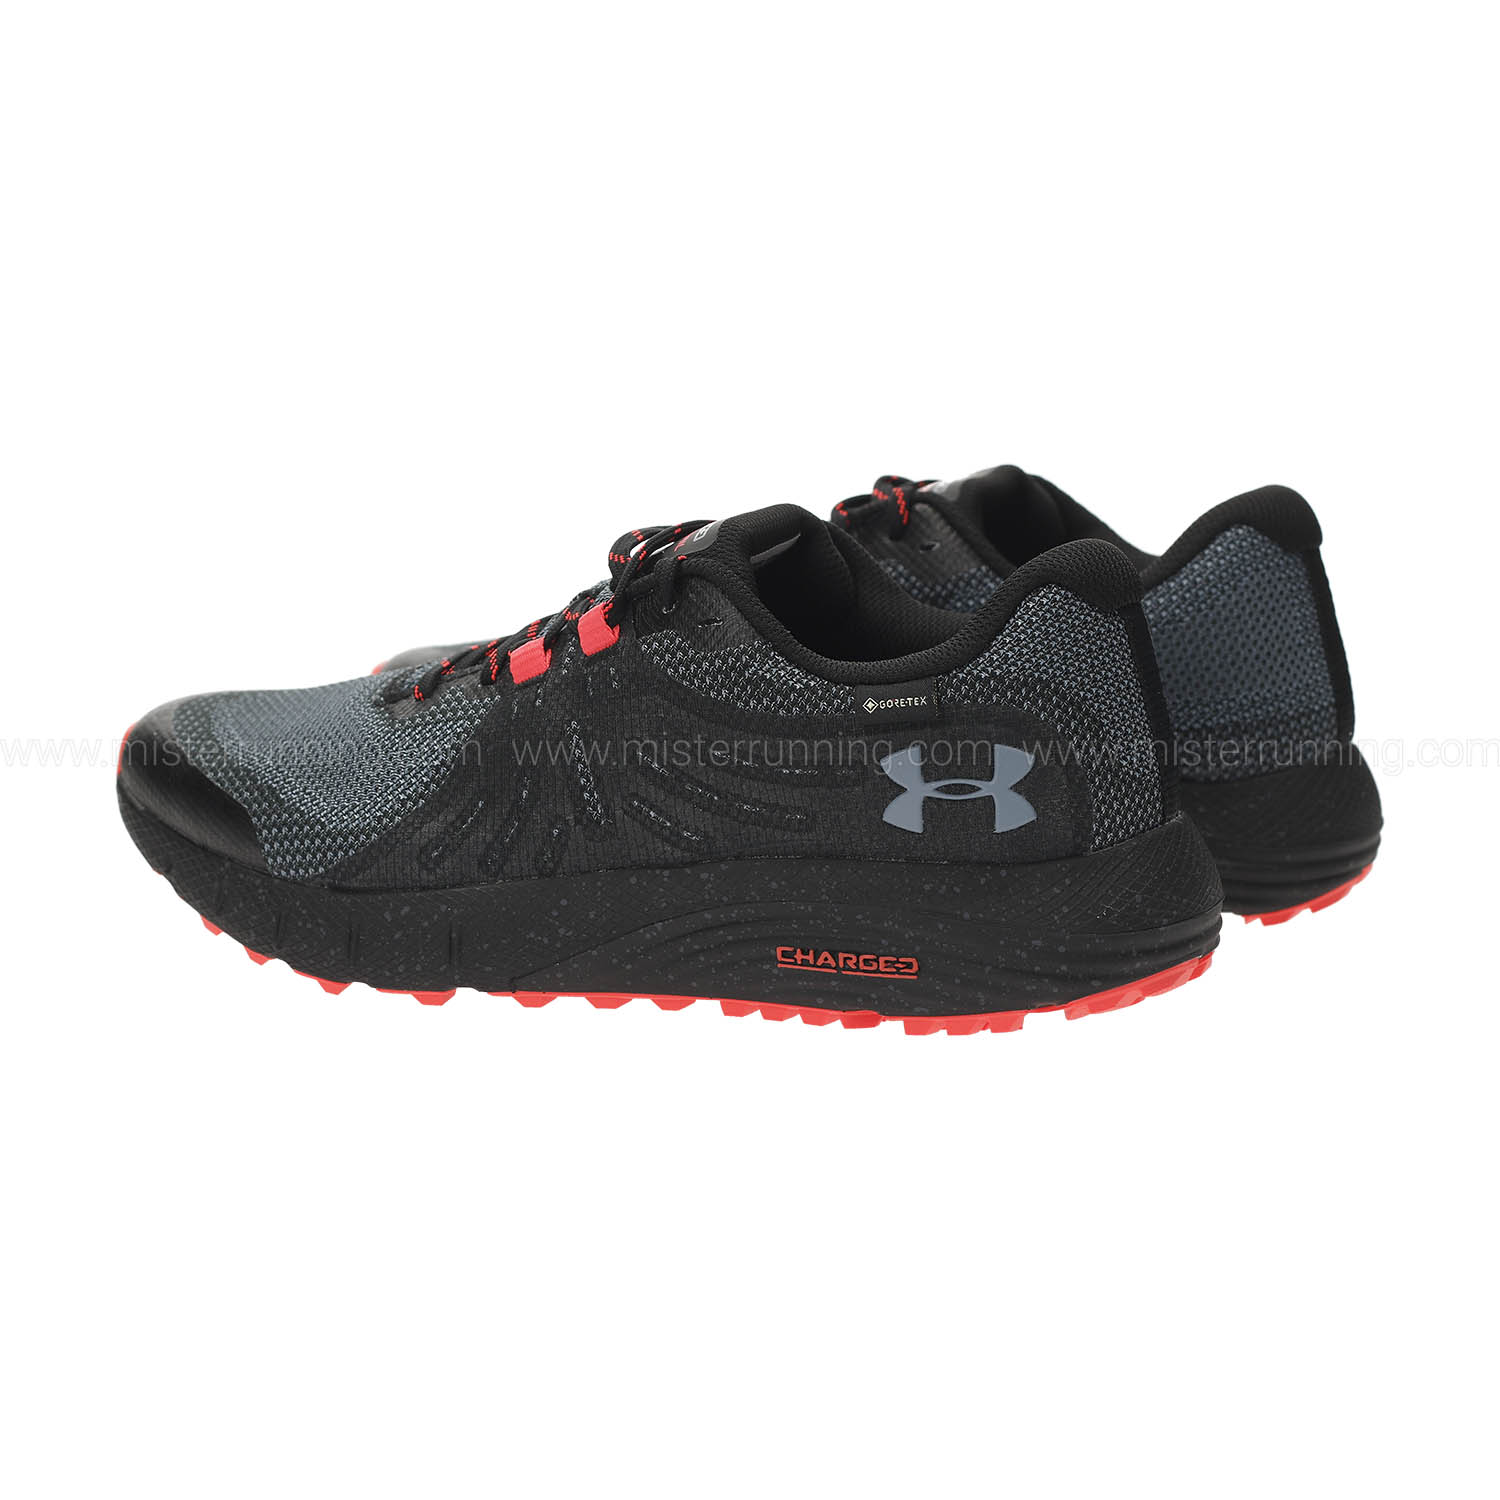 Under Armour Charged Bandit Trail GTX - Black/Wire